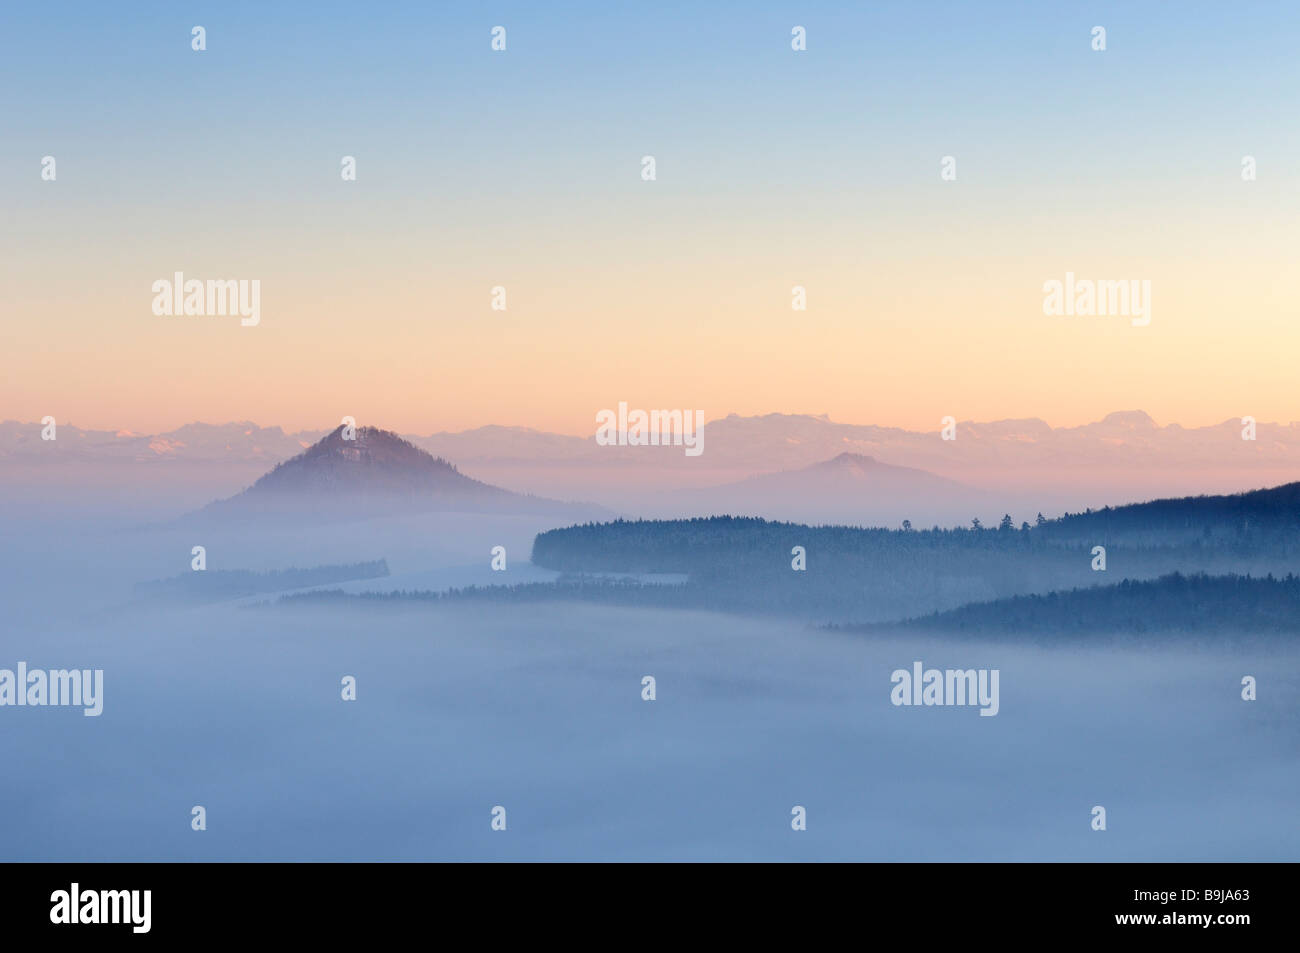 Hegau landscape with view of the Swiss Alps during an inversion, Konstanz district, Baden-Wuerttemberg, Germany, - Stock Image